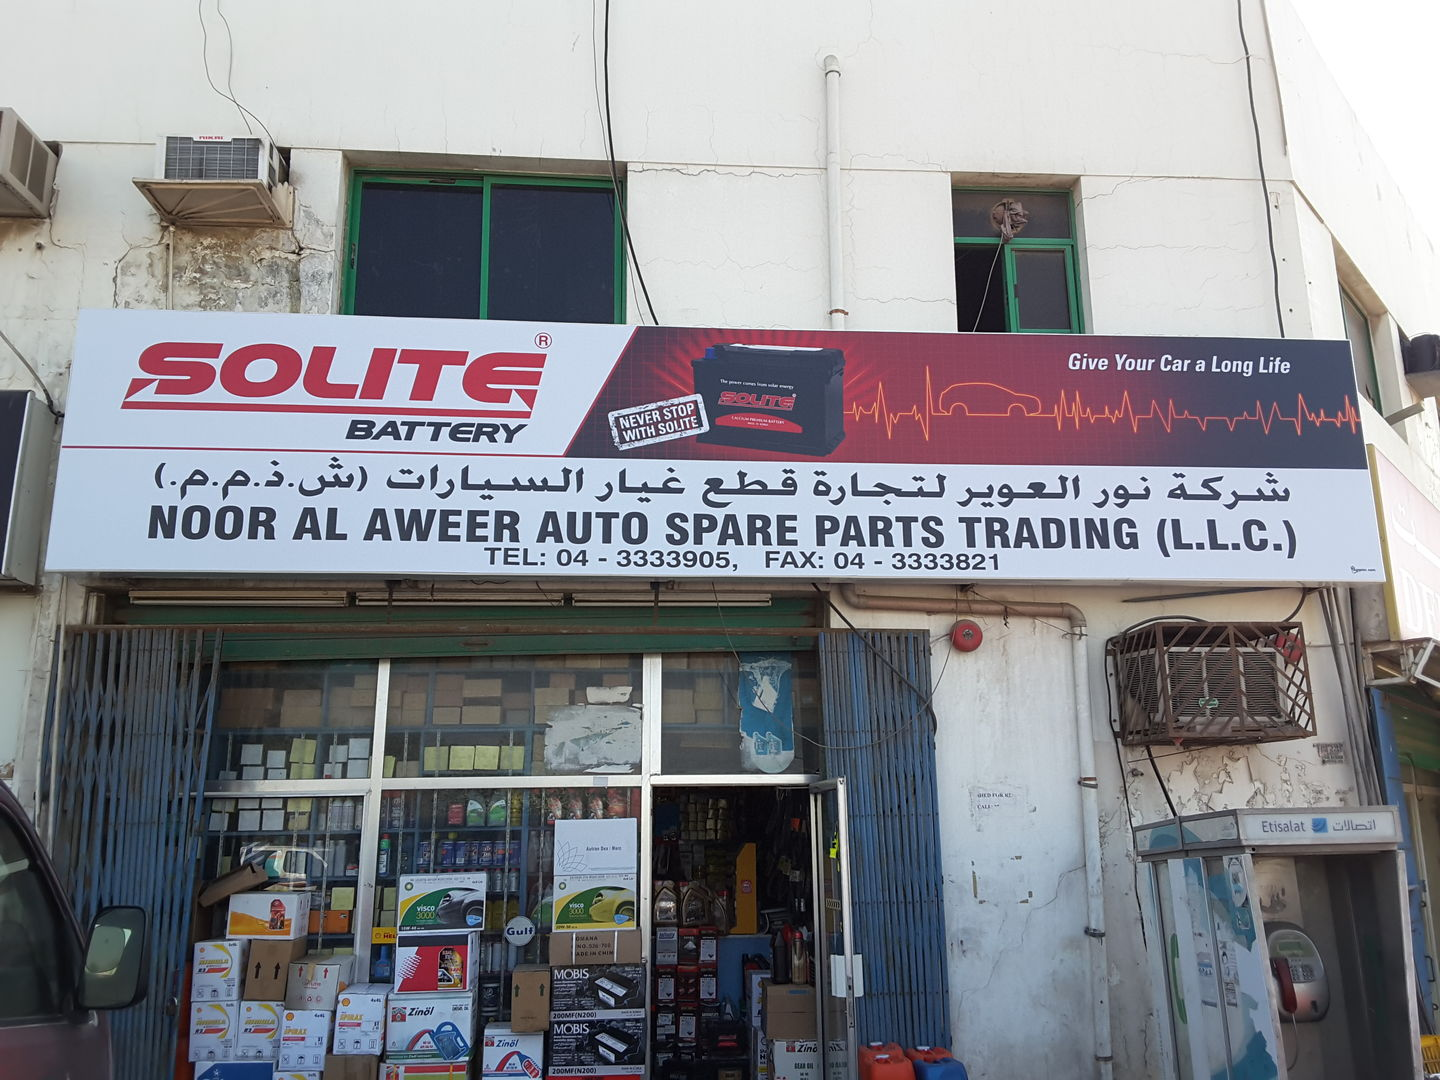 HiDubai-business-noor-alaweer-auto-spare-parts-trading-transport-vehicle-services-auto-spare-parts-accessories-ras-al-khor-industrial-1-dubai-2